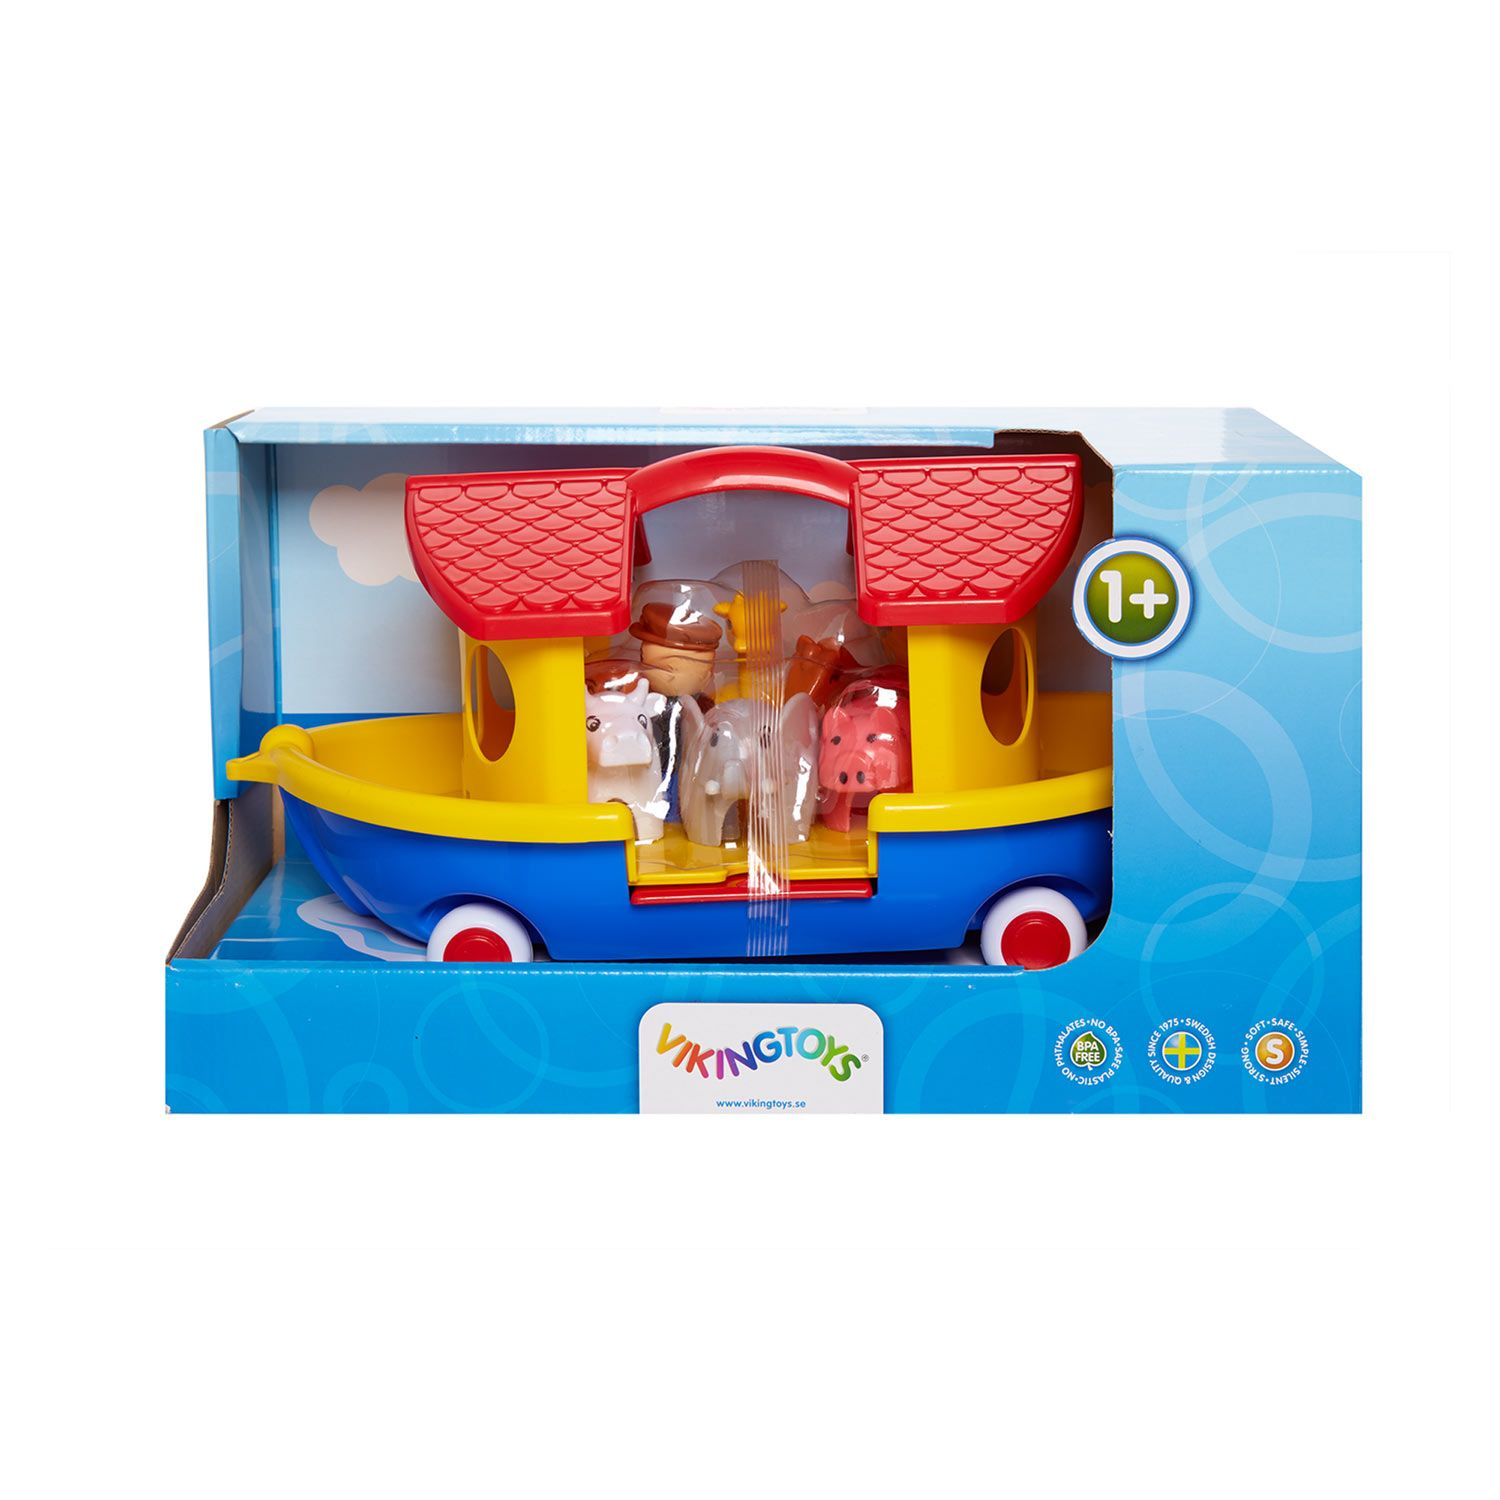 Viking Toys Noahs Ark Toy Set